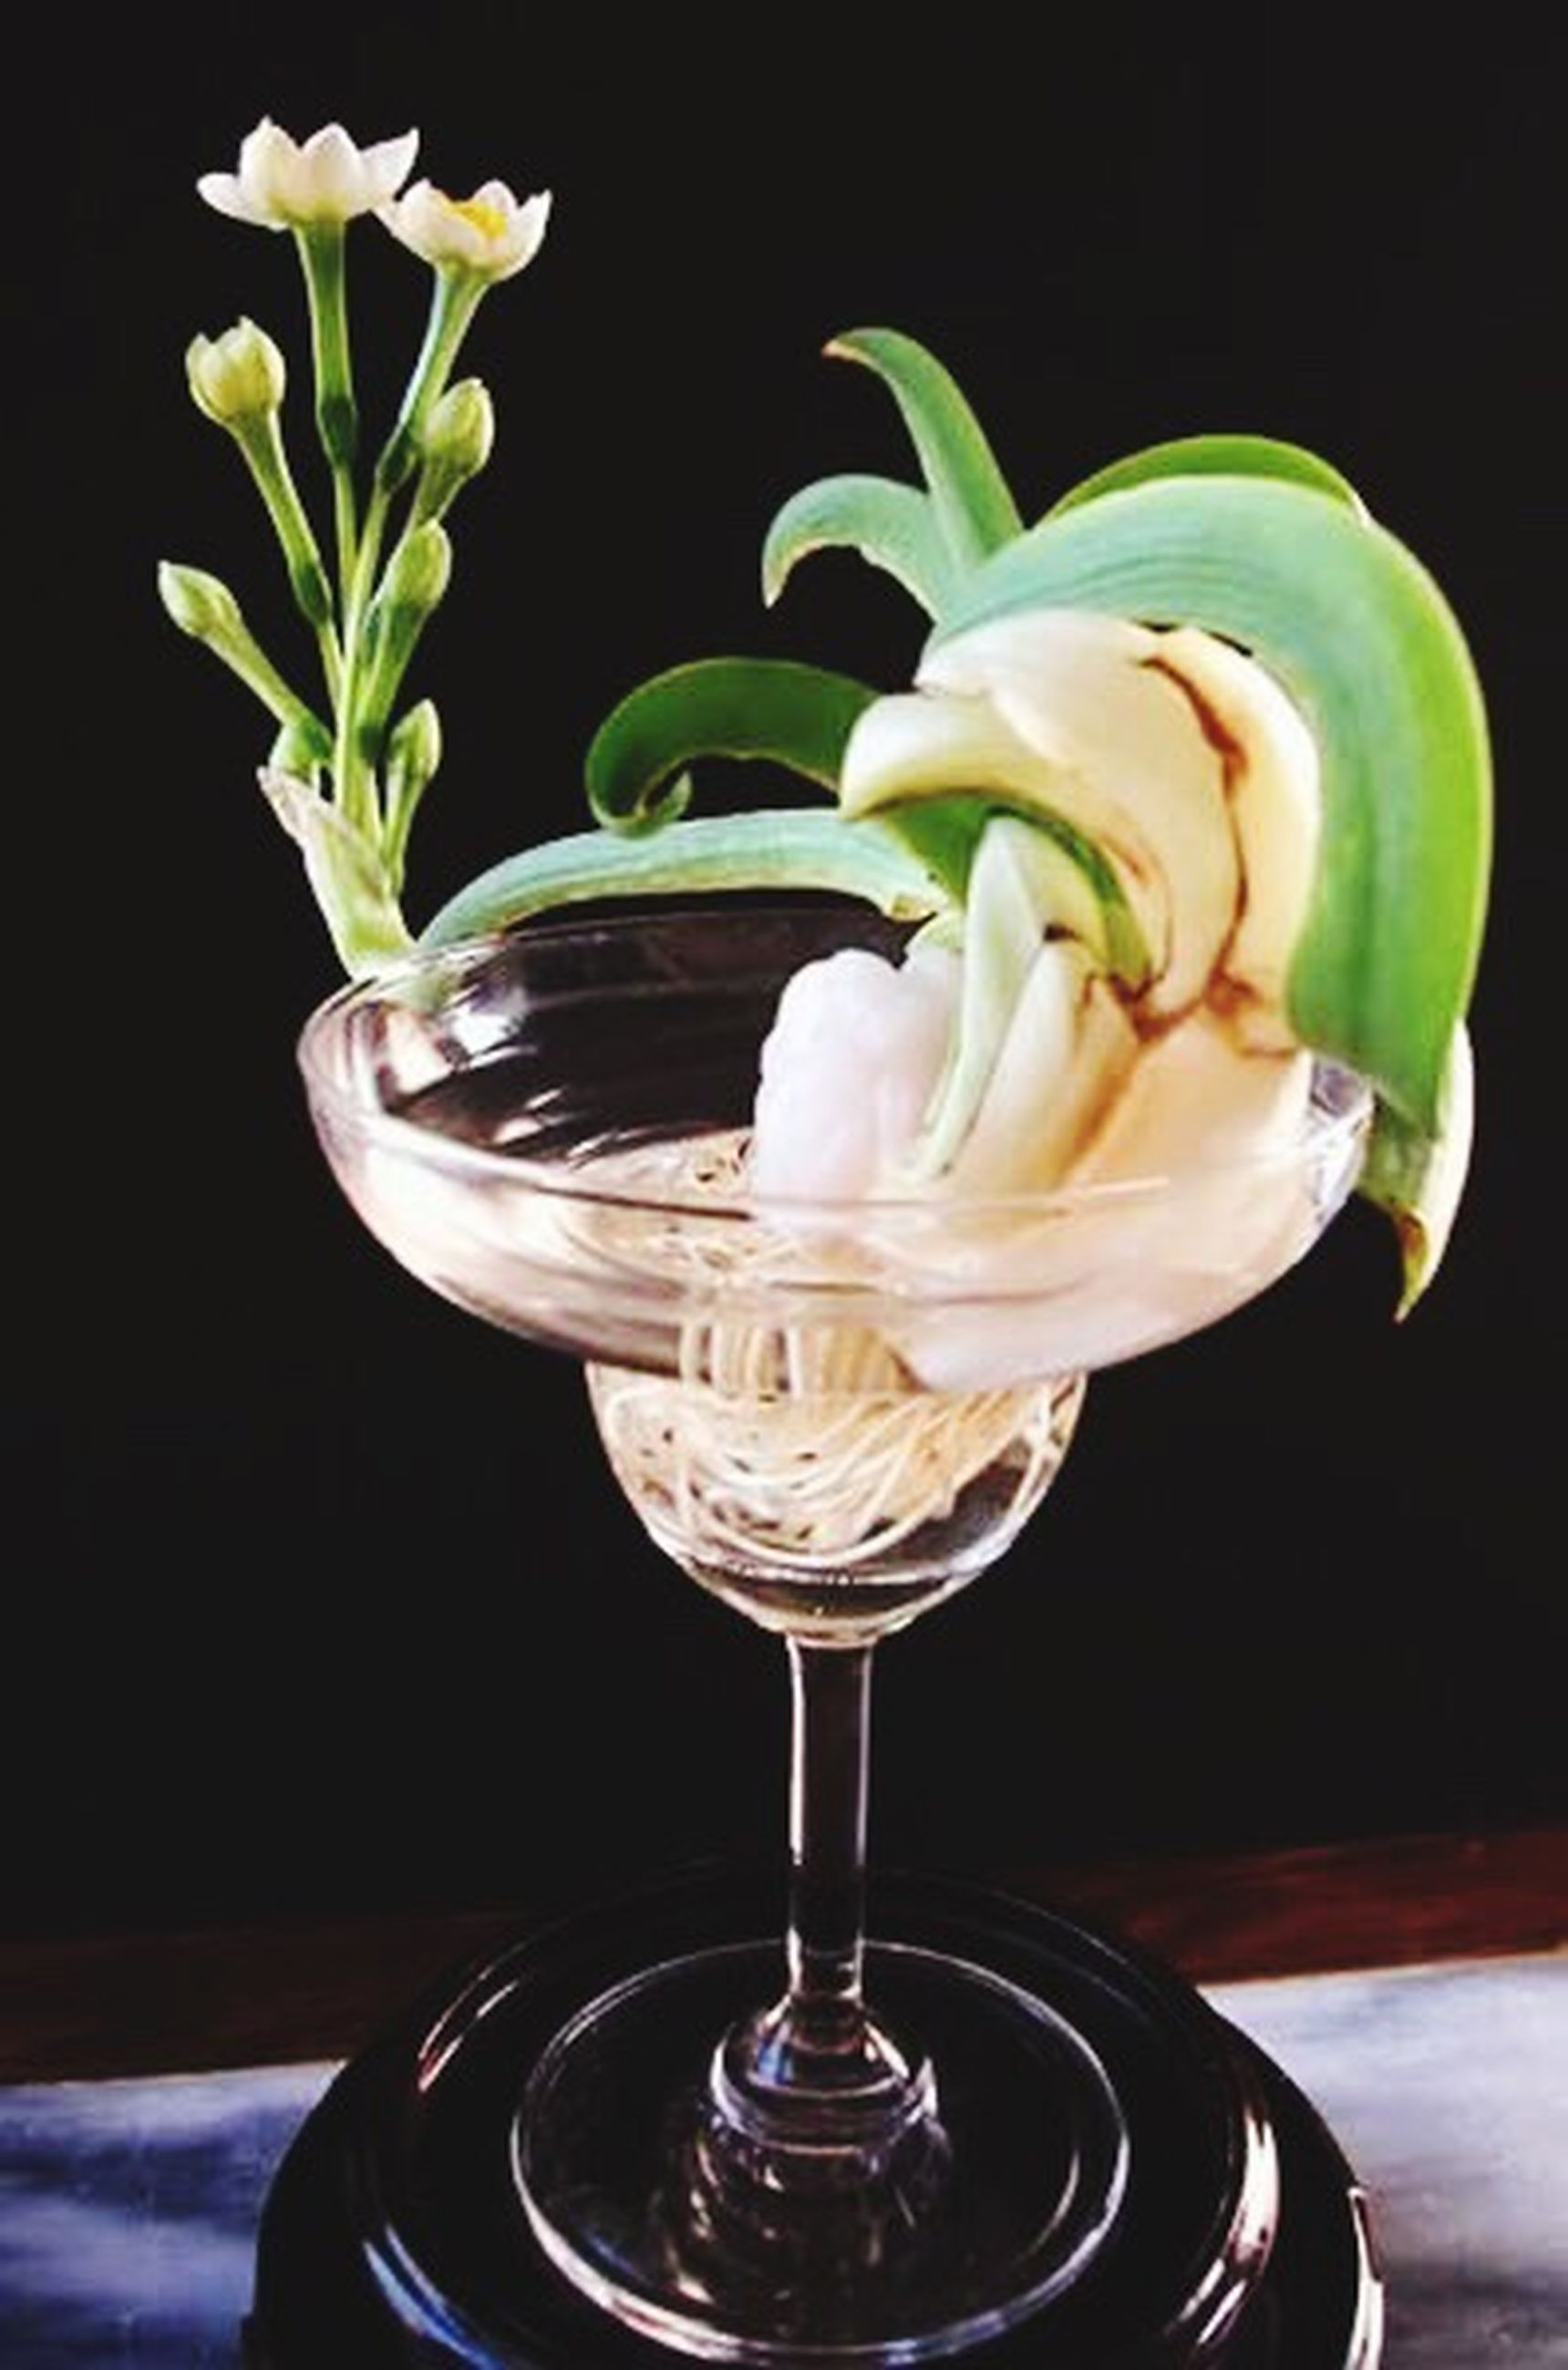 freshness, drink, table, refreshment, flower, drinking glass, indoors, close-up, food and drink, fragility, still life, glass - material, wineglass, vase, petal, water, glass, focus on foreground, transparent, studio shot